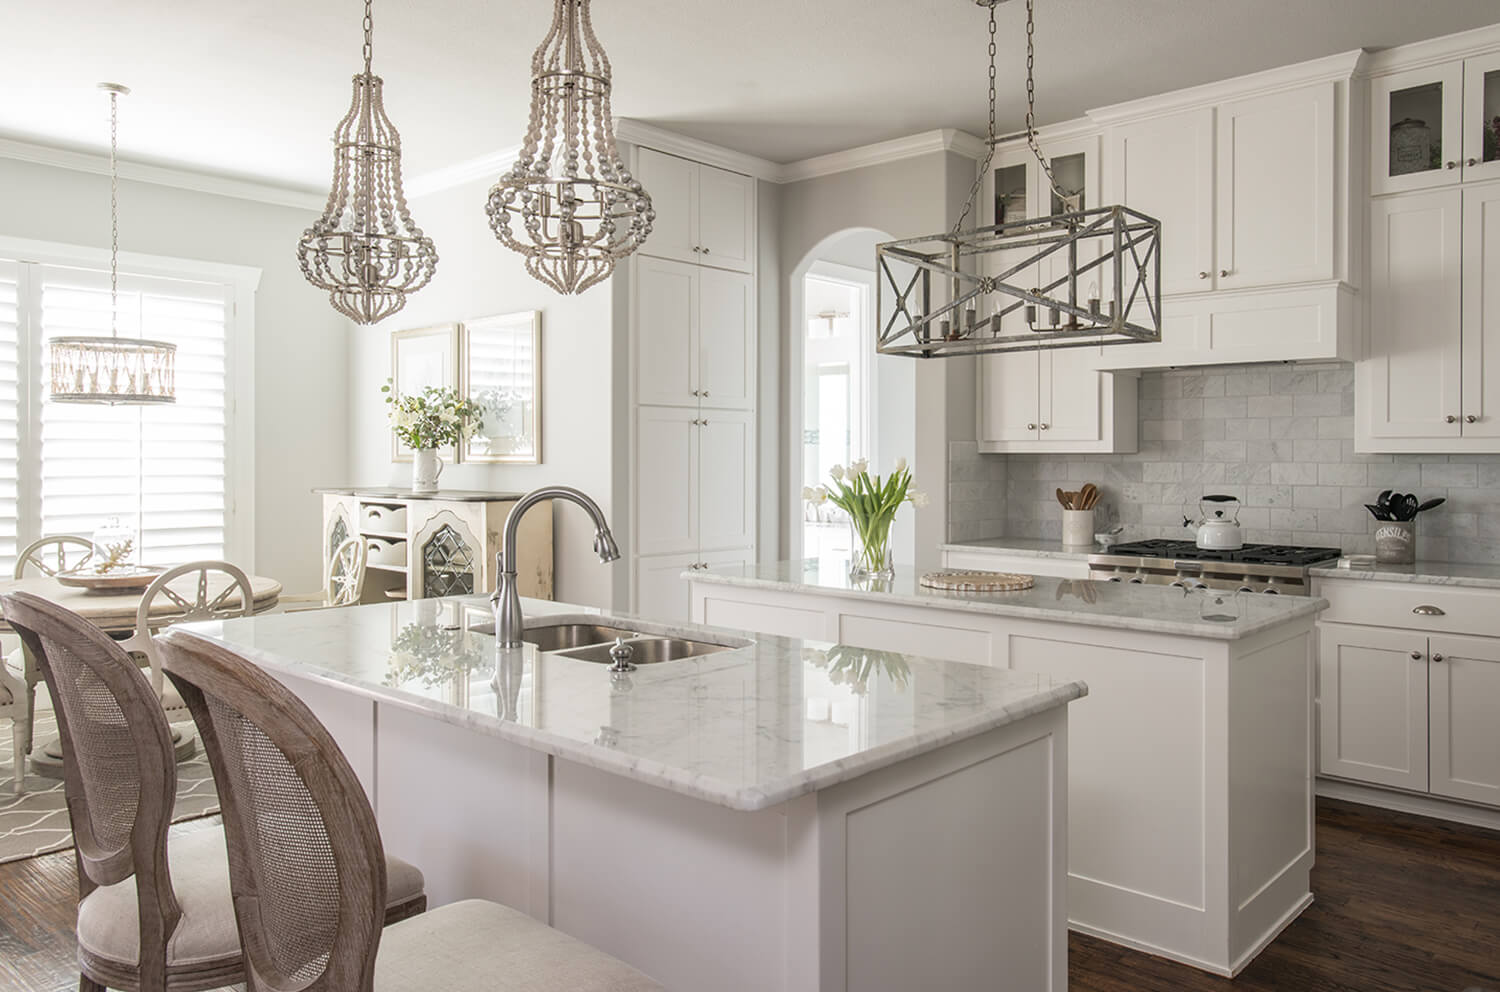 A whole home furnishings project in Colleyville, Texas